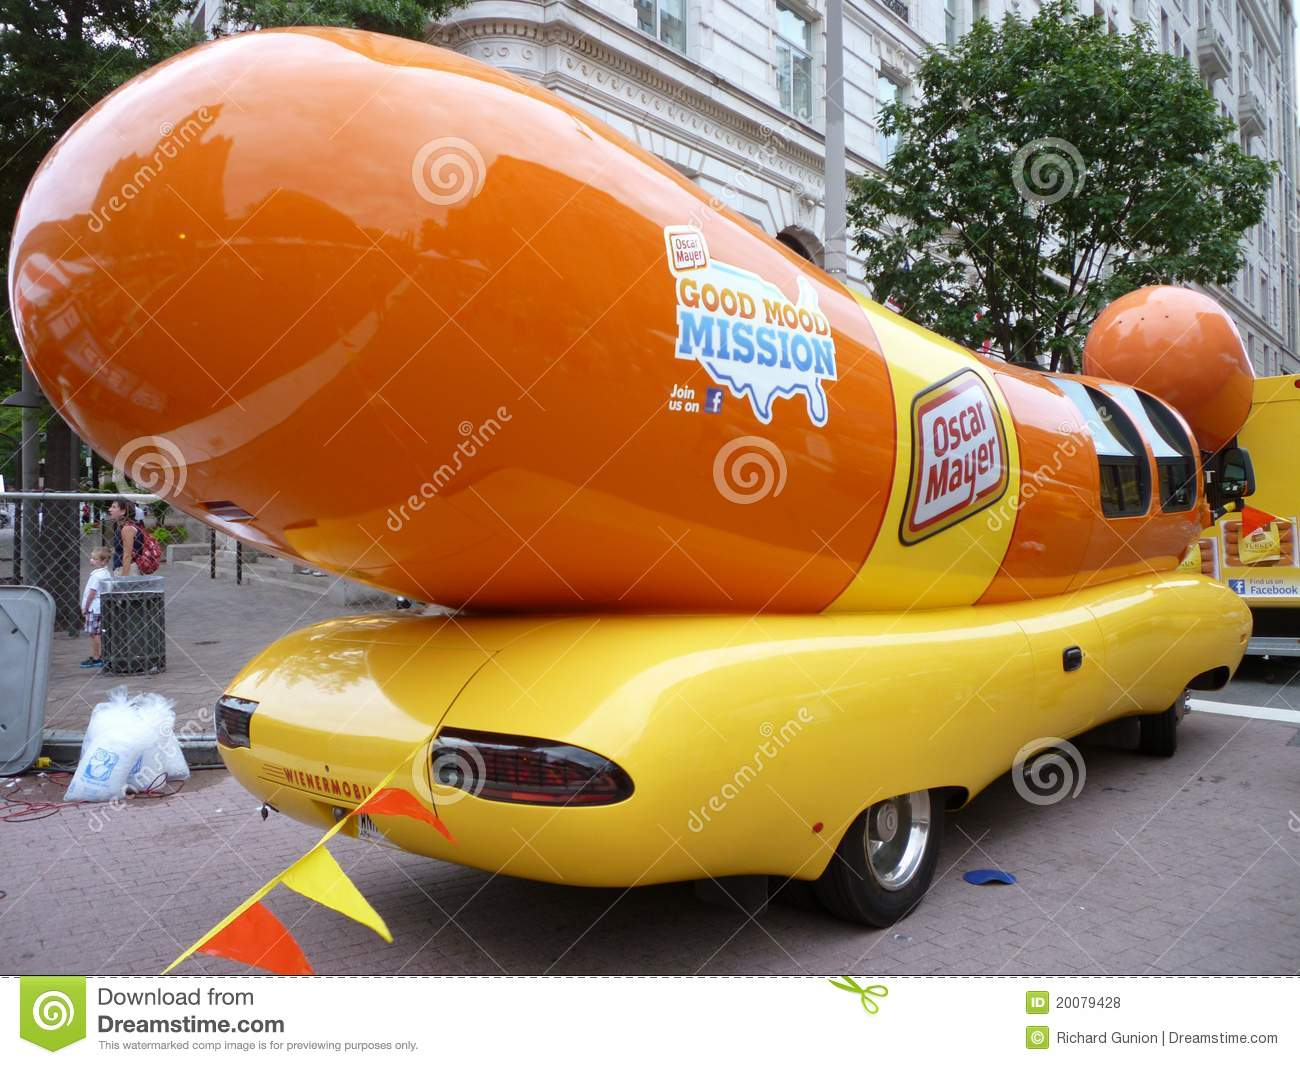 Royalty Free Stock Photos Oscar Mayer Wiener Mobile Image20079428 on oscar mayer turkey products